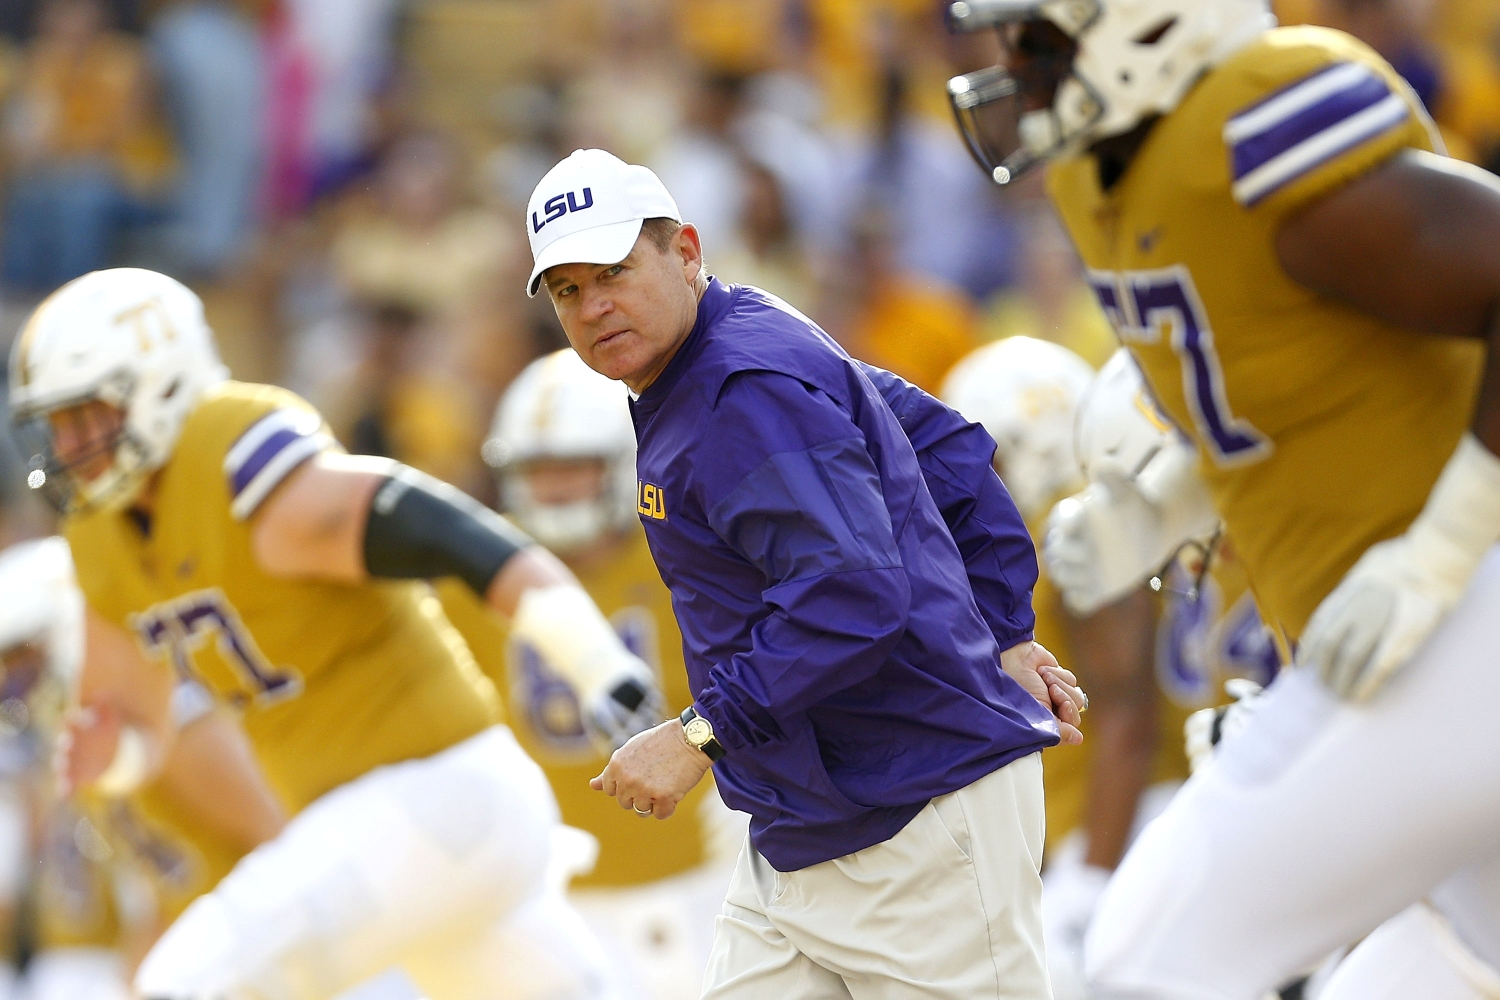 Les Miles' Disturbing Pattern of Alleged Sexual Misconduct Forced LSU to Take Drastic Legal Measures to Protect Female Students